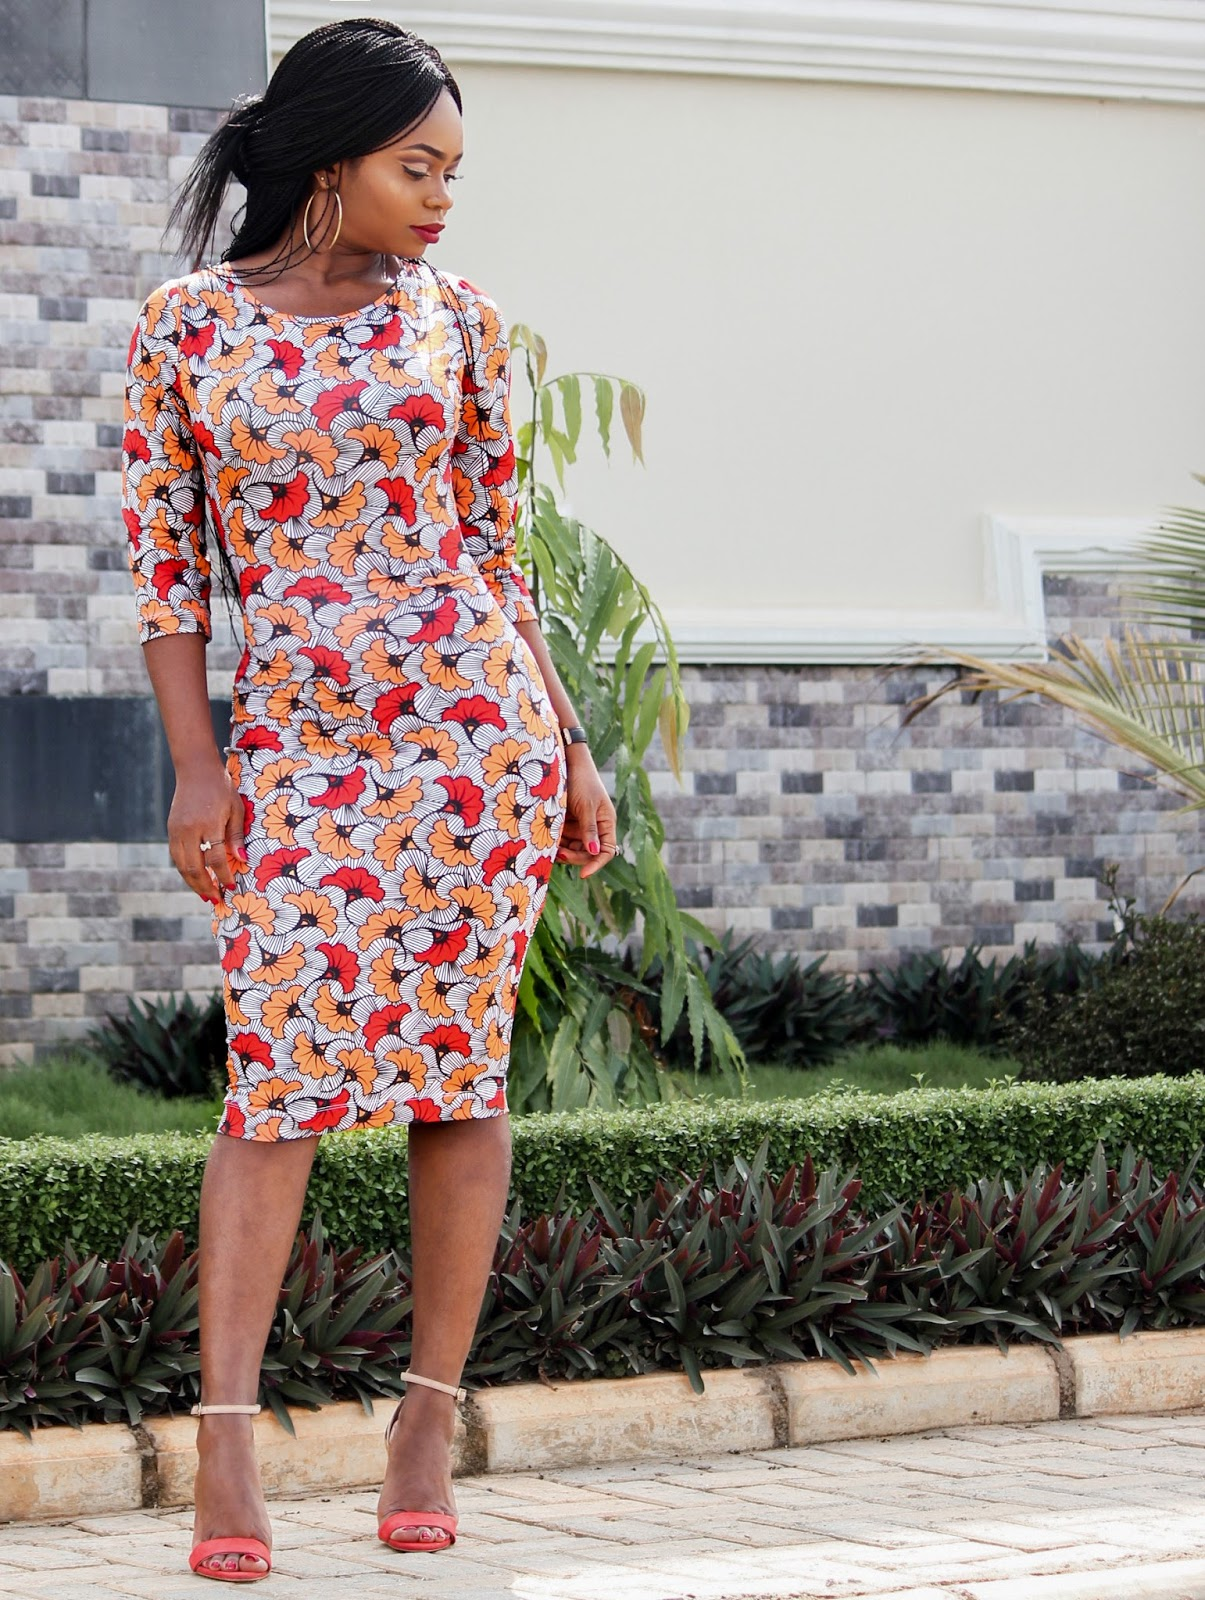 AFRICAN PRINT WITH A TWIST - Zakaara African Custom Stretch Print  Dress  in Kpotuba Print